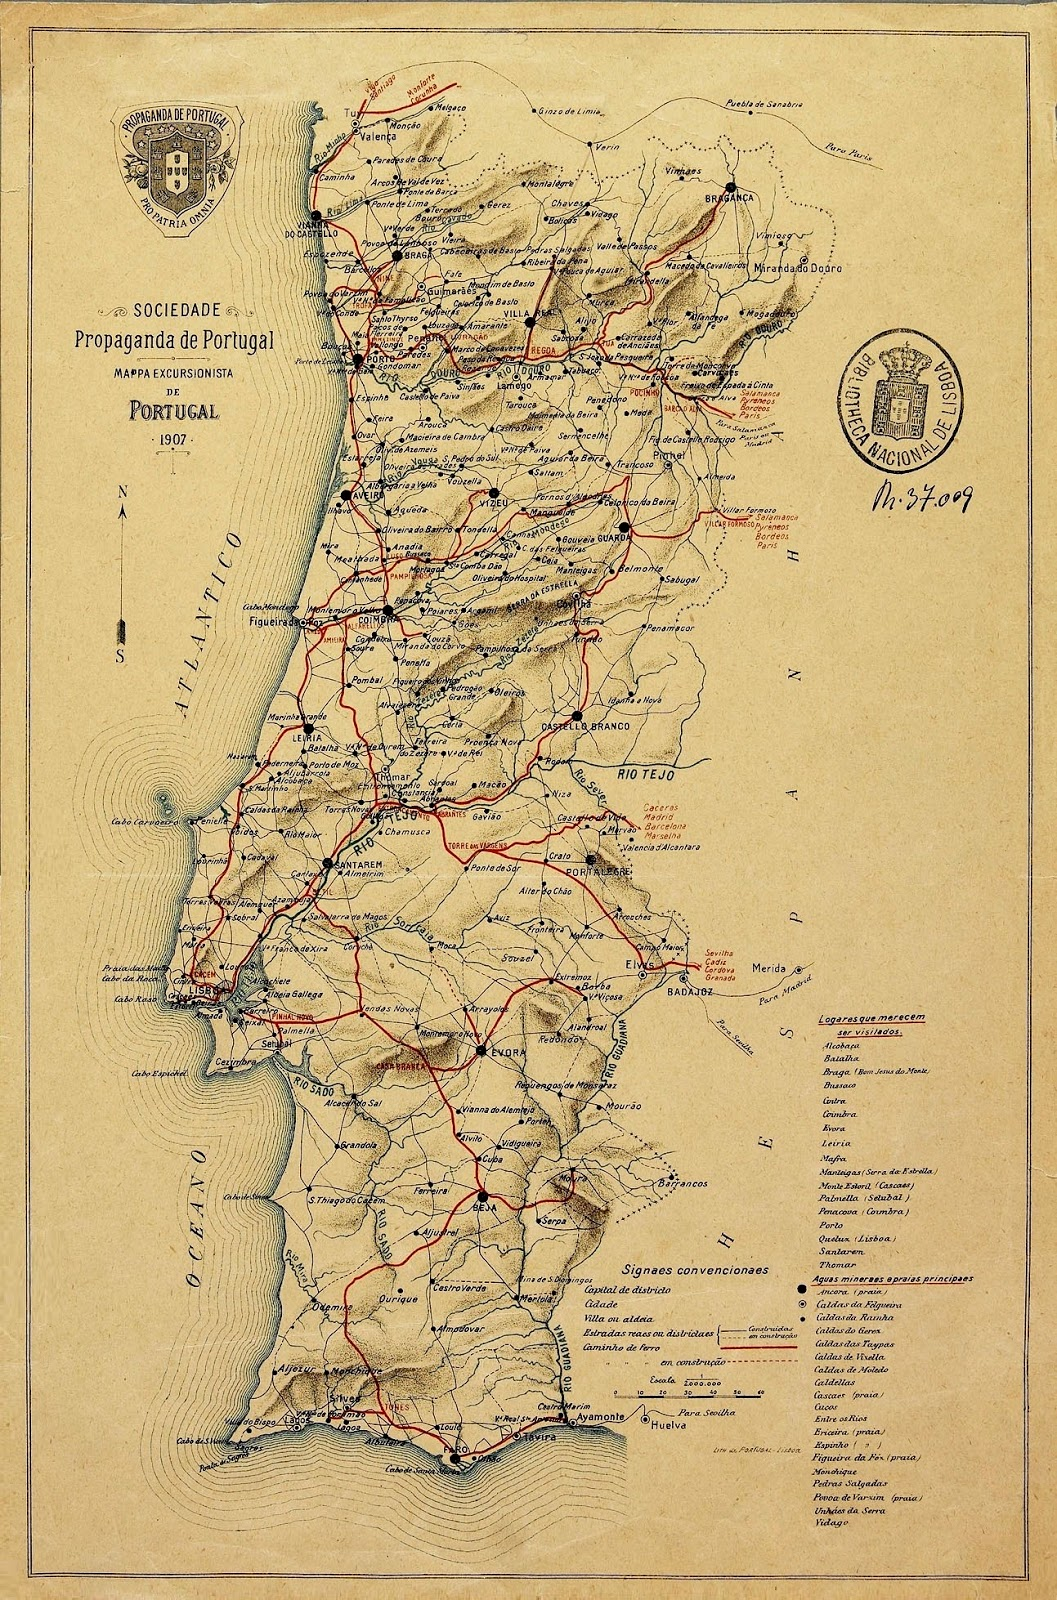 [1907-Mapa-Excursionista-da-SPP30]